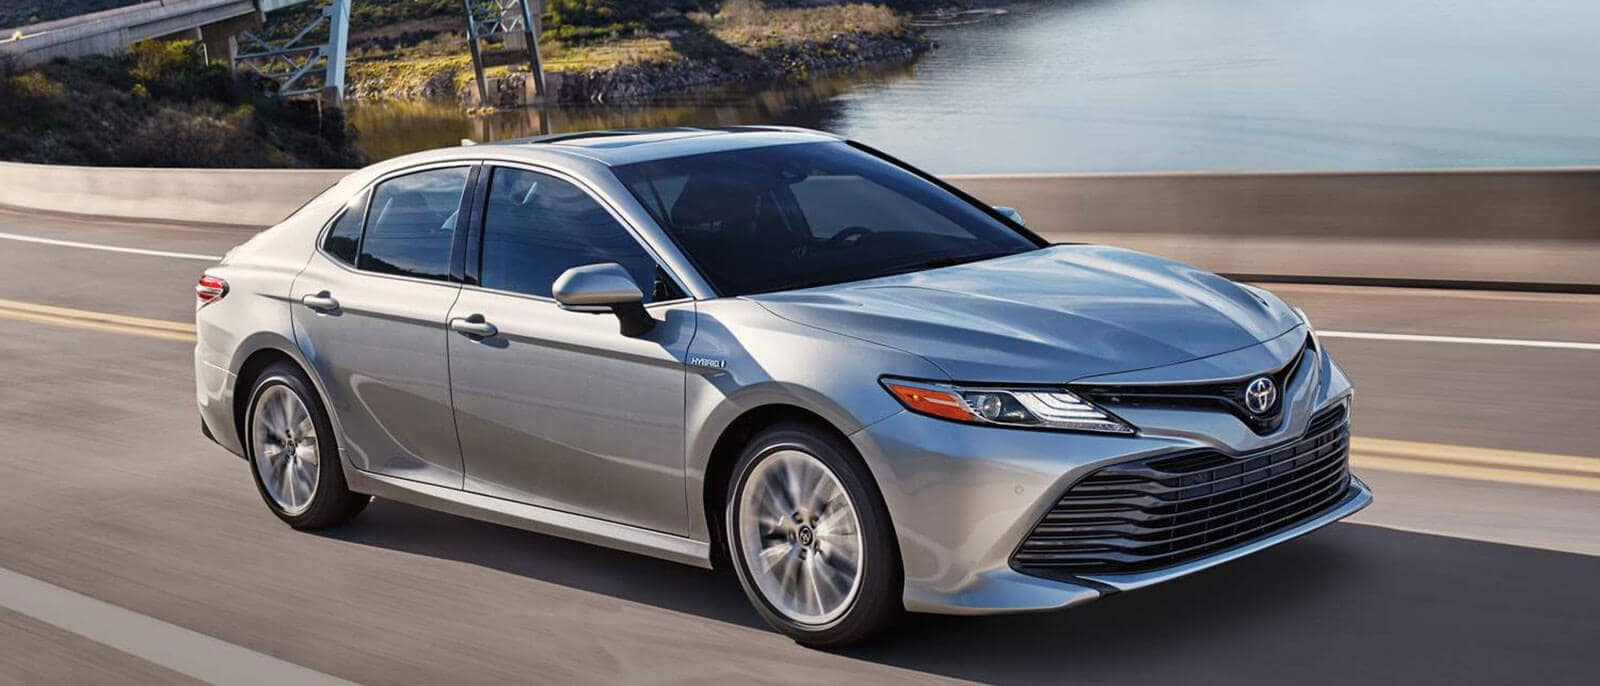 2018 toyota camry specs and features lethbridge toyota. Black Bedroom Furniture Sets. Home Design Ideas